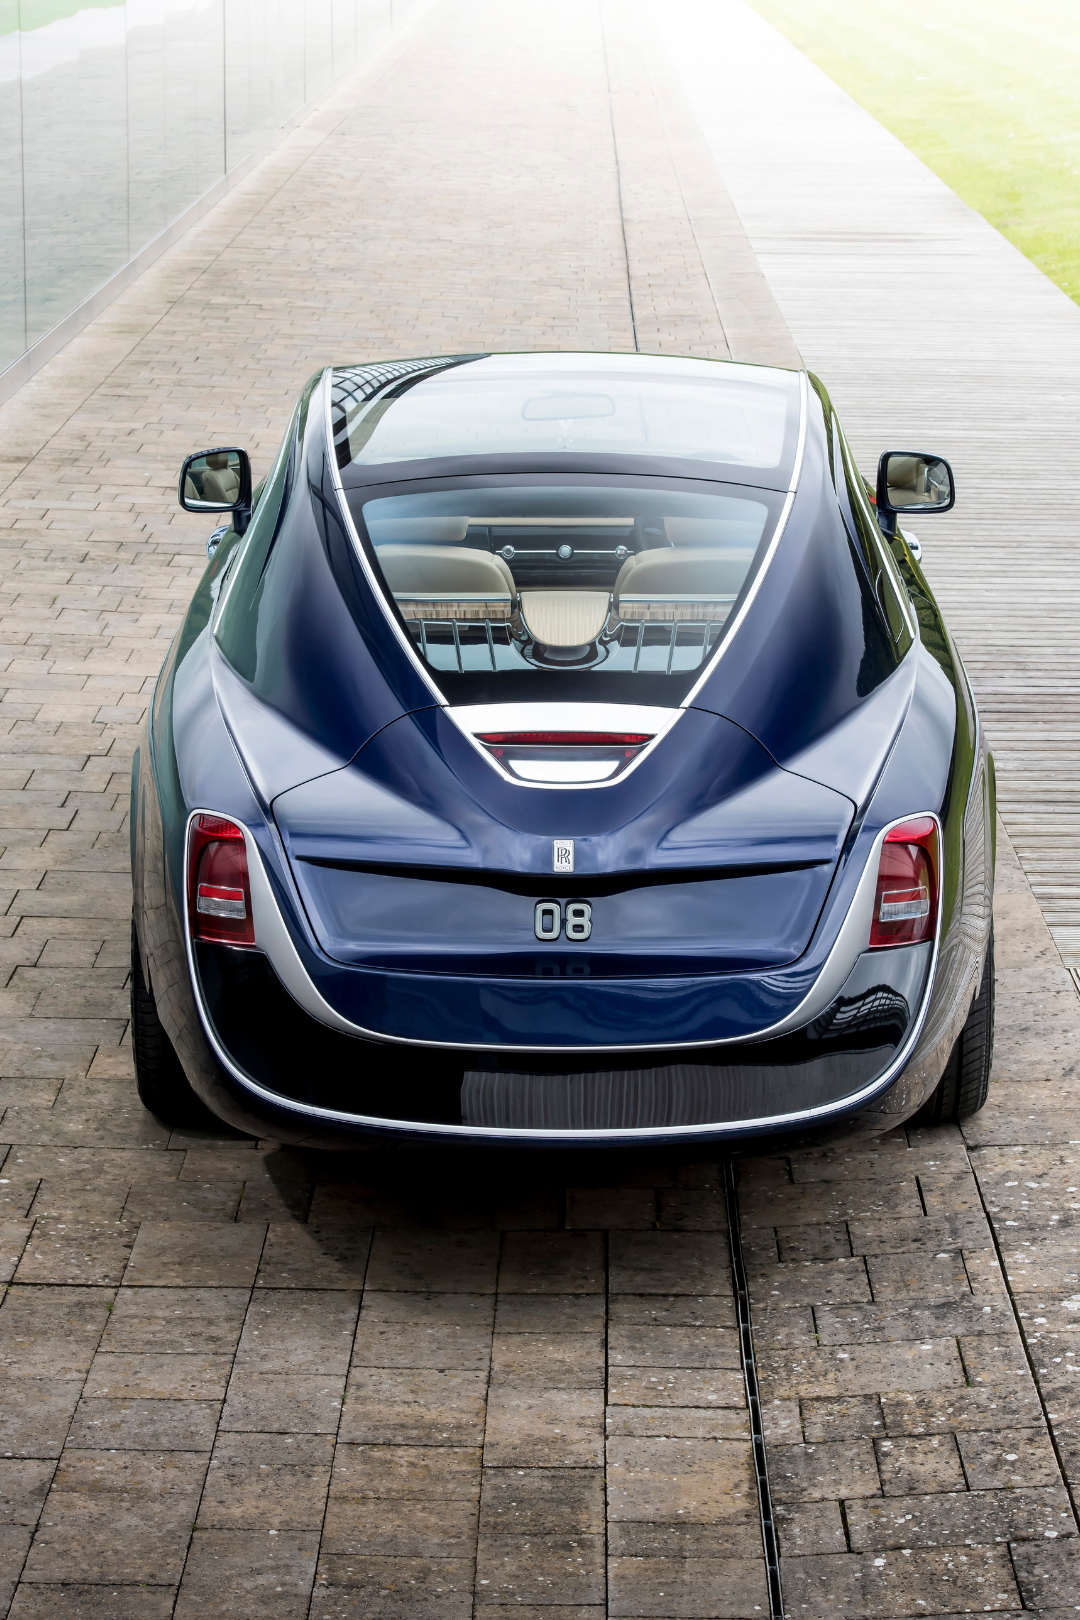 Top 5 Most Expensive Cars In The World 2020 Owners Pics Rolls Royce Rolls Royce Models Rolls Royce Motor Cars